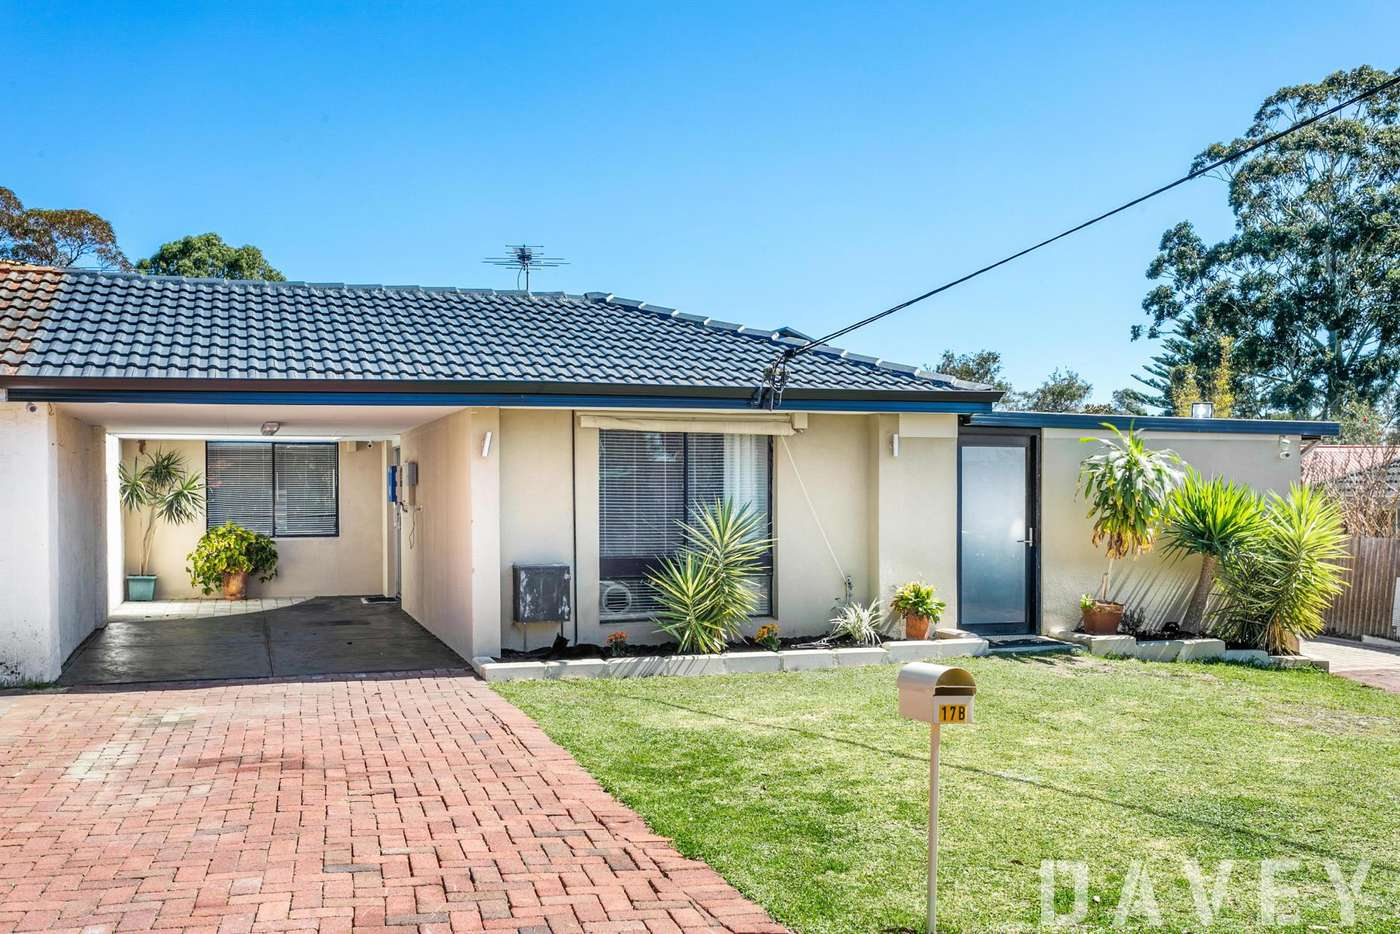 Main view of Homely house listing, 17B Redgum Street, Greenwood WA 6024